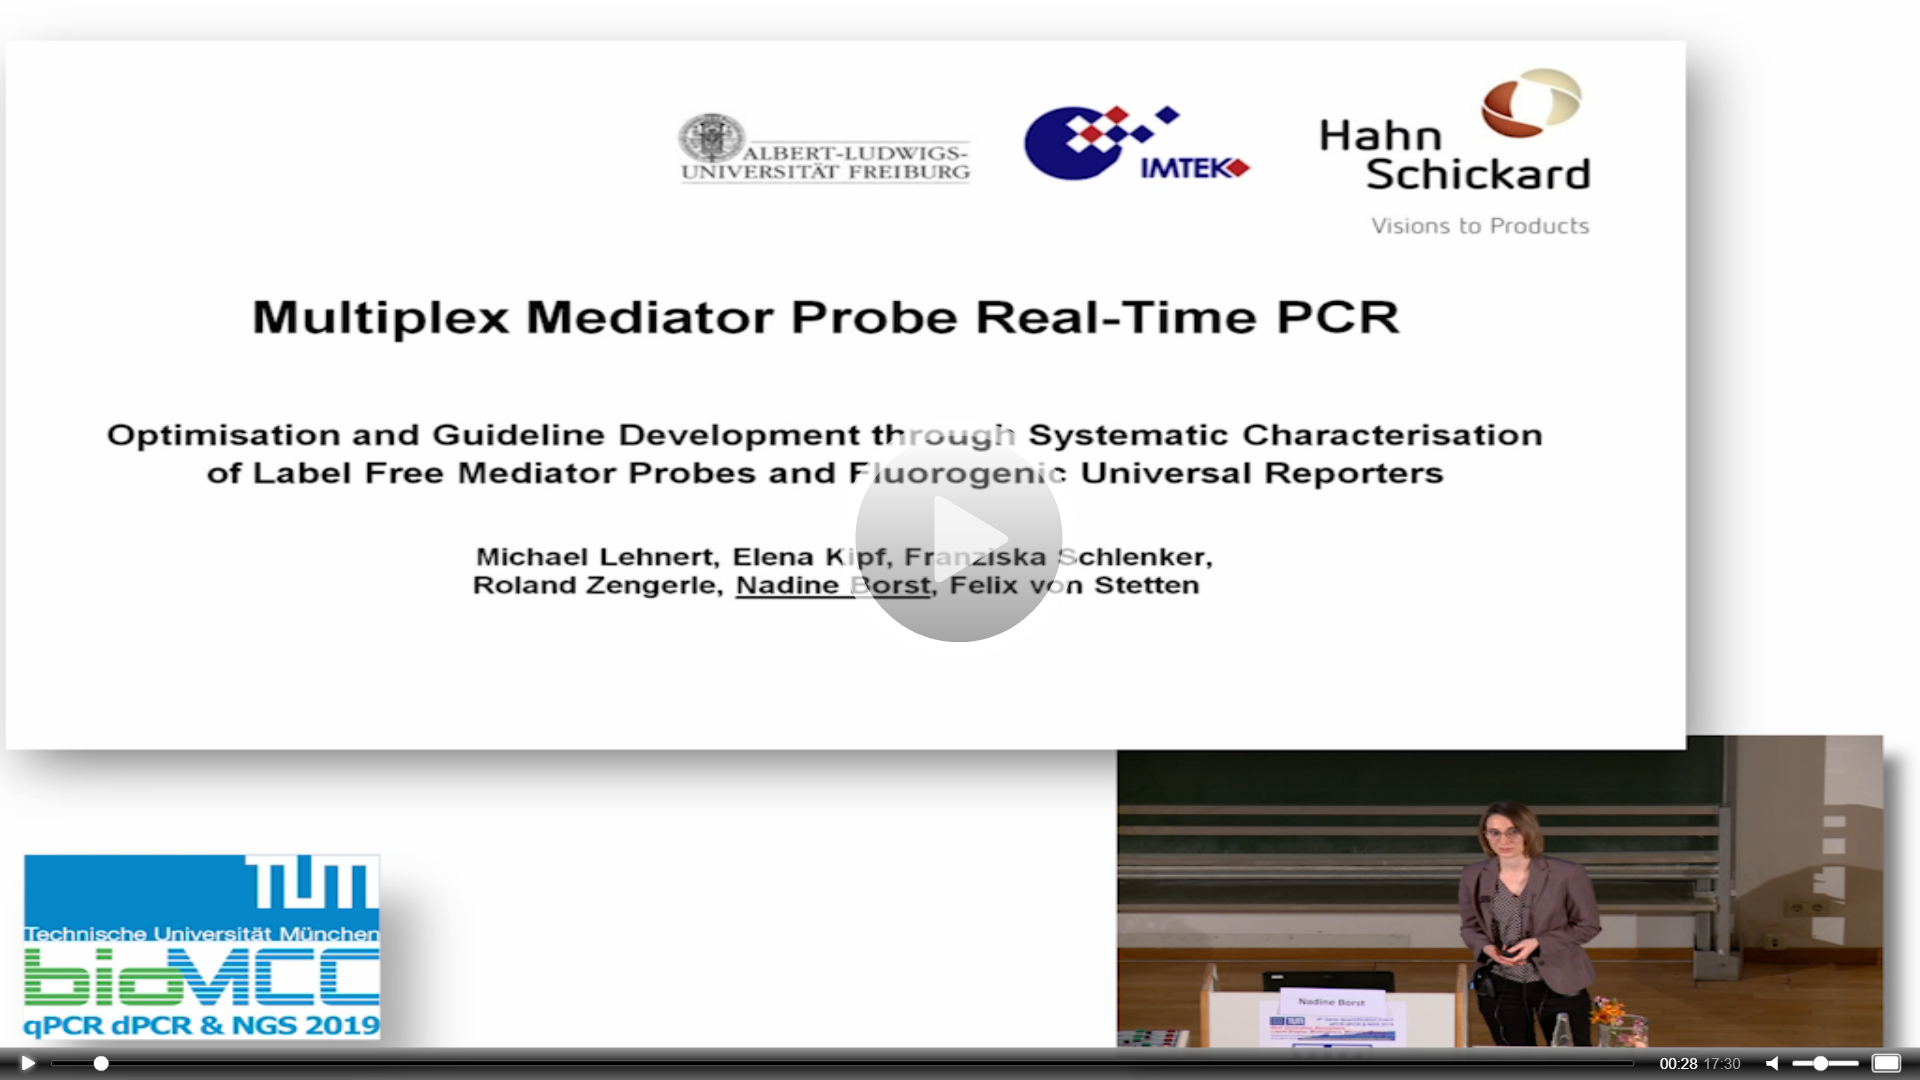 Multiplex Mediator Probe Real-Time PCR: Optimisation and Guideline Development through Systematic Characterisation of Label Free Mediator Probes and Fluorogenic Universal Reporters